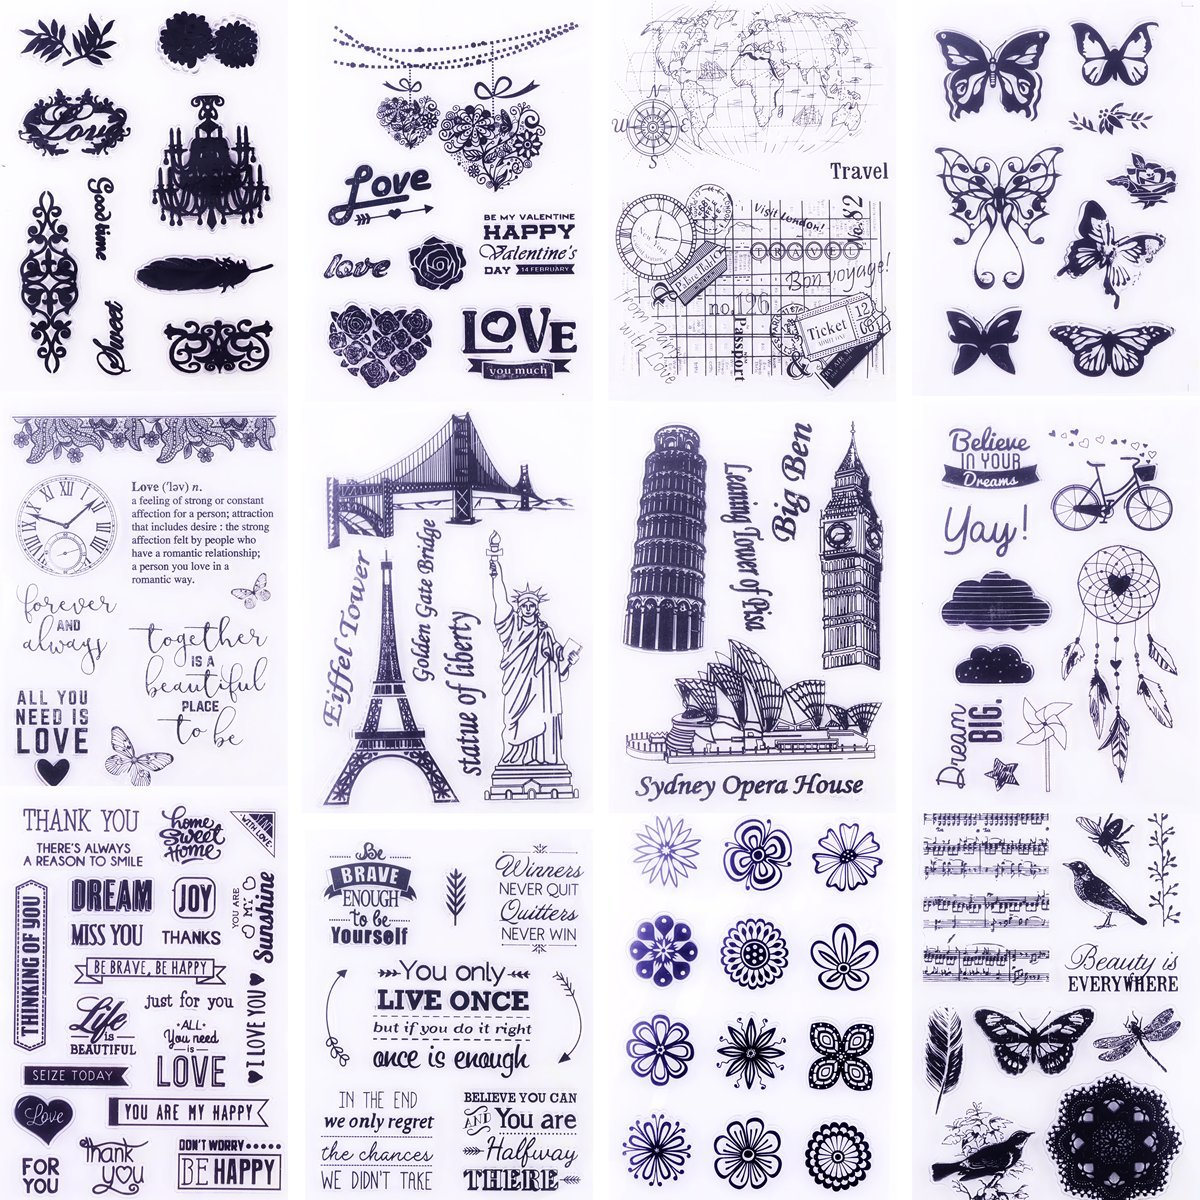 Clear Stamps for Cards Making 8 Sheets Scrapbook Rubber Silicone for DIY Scrapbooking Seal Photo Album Wish Decorative Butterfly Love Heart Words Kits(12 Sheets)